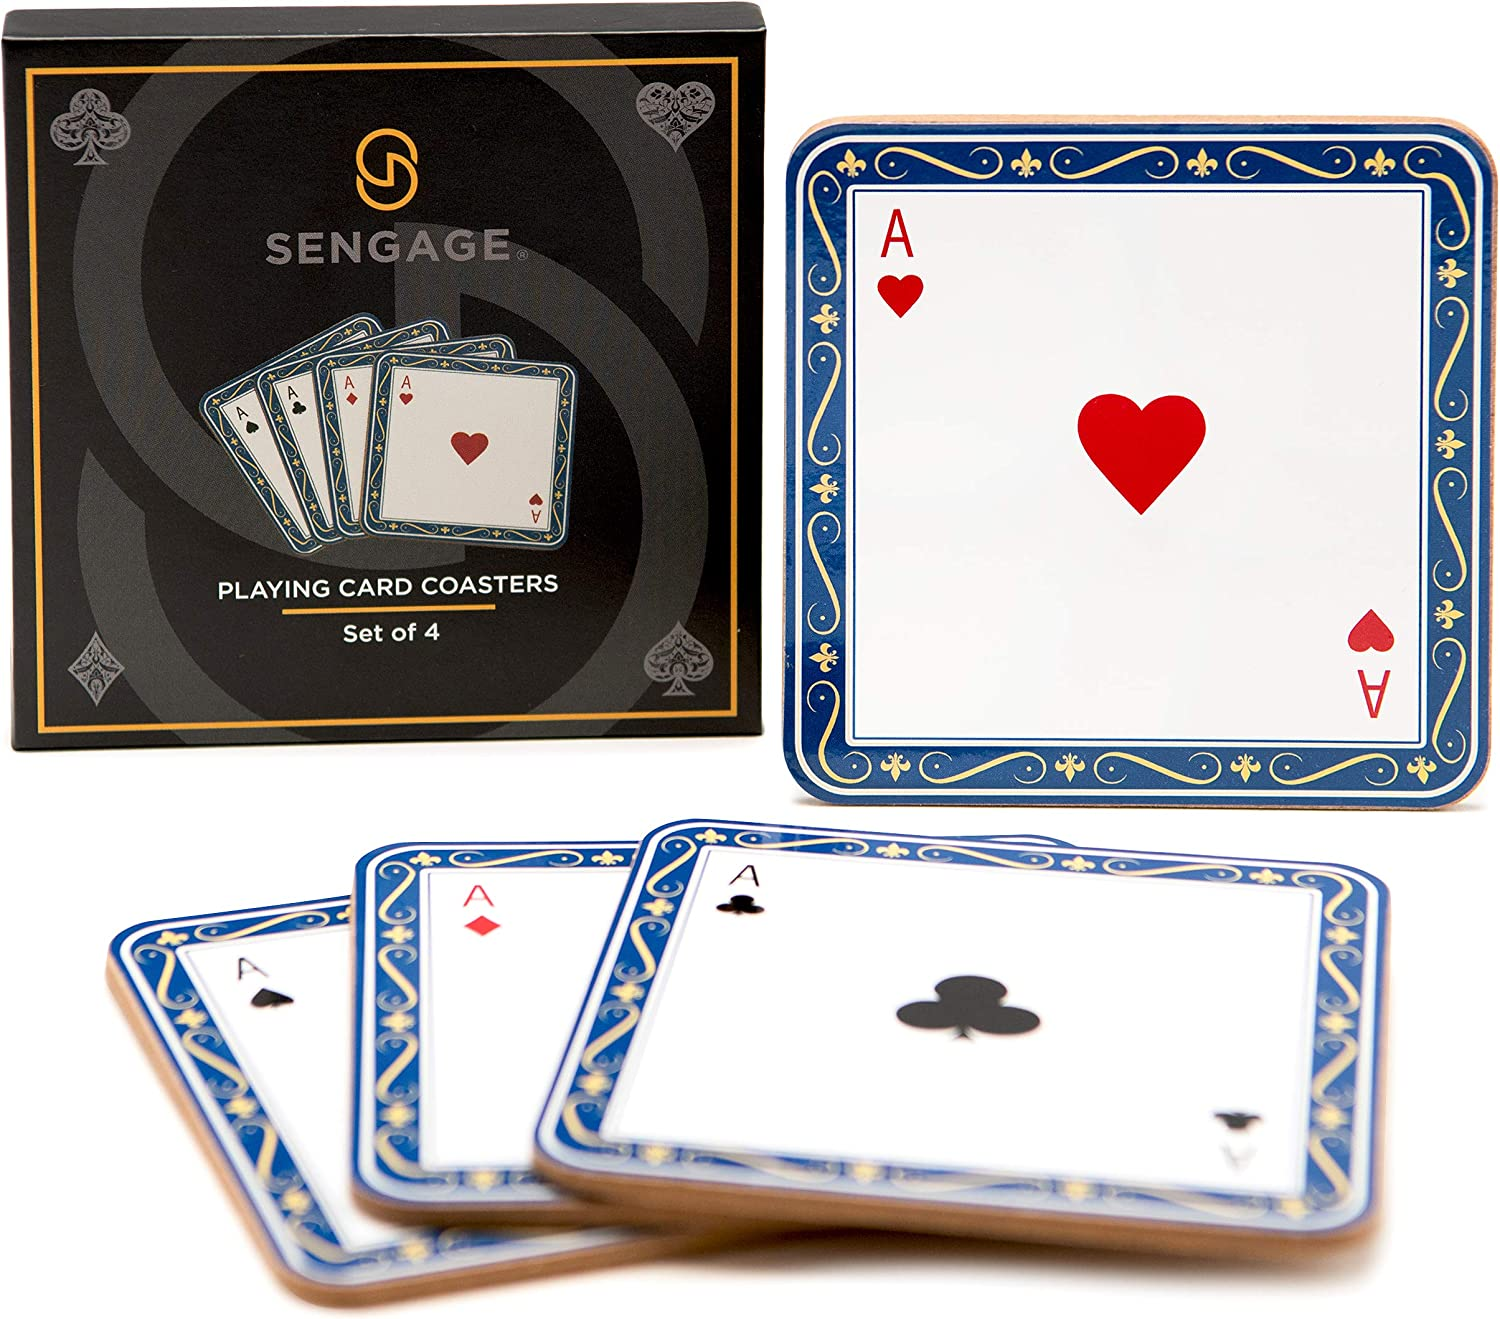 Playing Card Coasters for Drinks, Bar Coasters for Glasses, 4 Cork Beer Coasters for Cups, Unique Novelty Present for Man Cave Bar or Bar Décor for Home, Square Cup Mats for Table, Drink Coaster Set